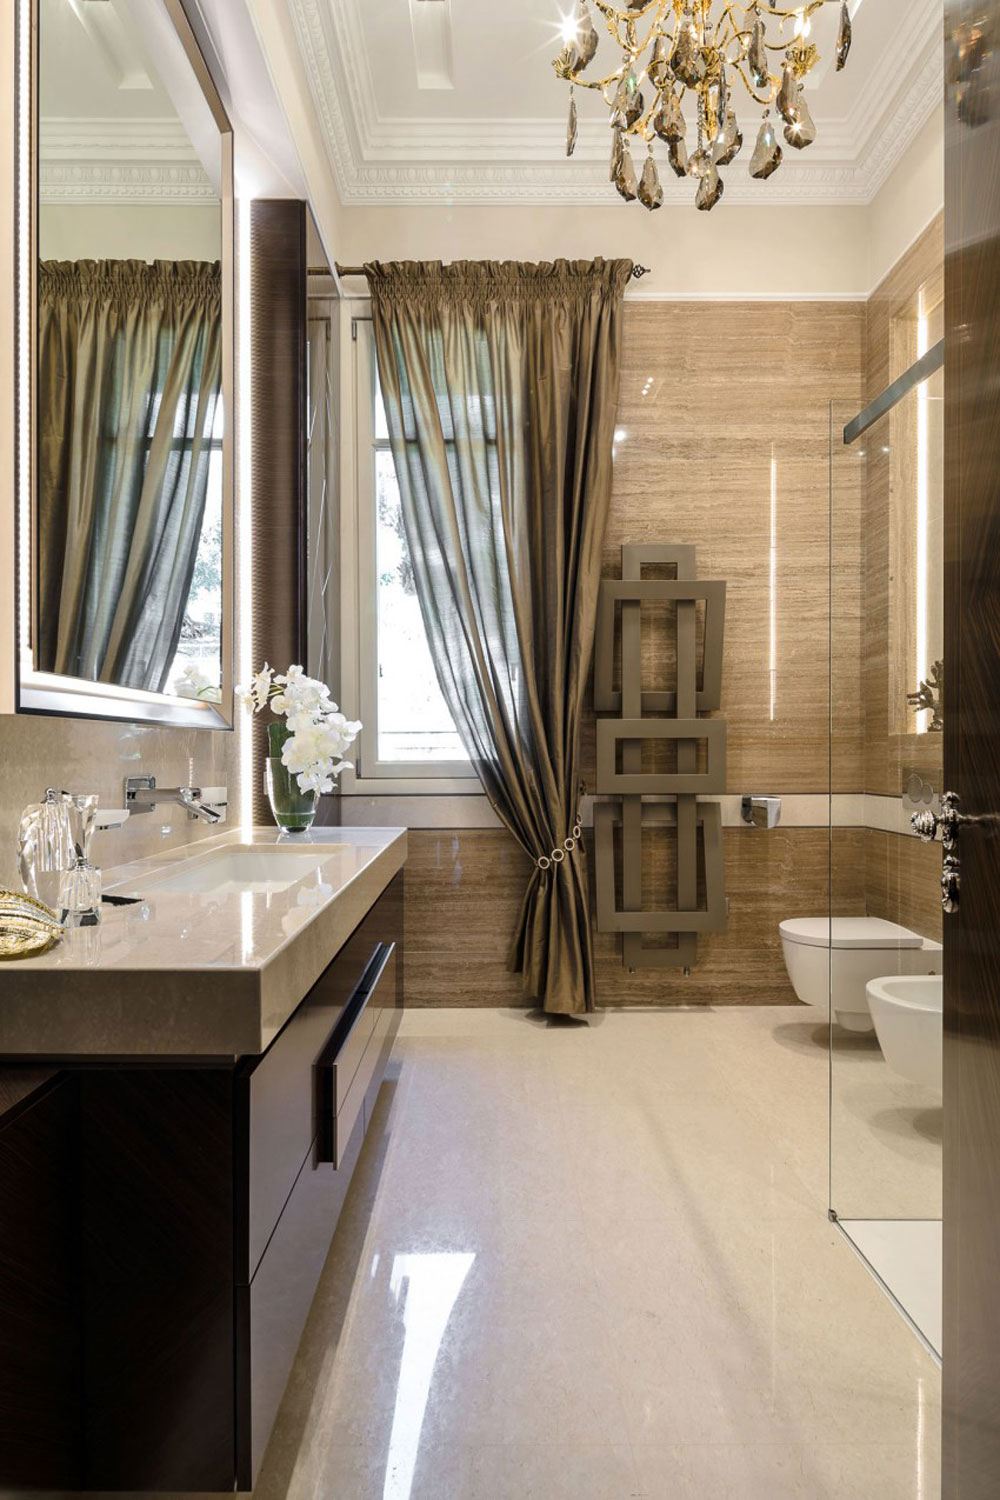 Latest Bathroom Interiors That Your Eyes Need To  Latest Bathroom Interiors  That Your Eyes Need. Latest Bathroom Interior